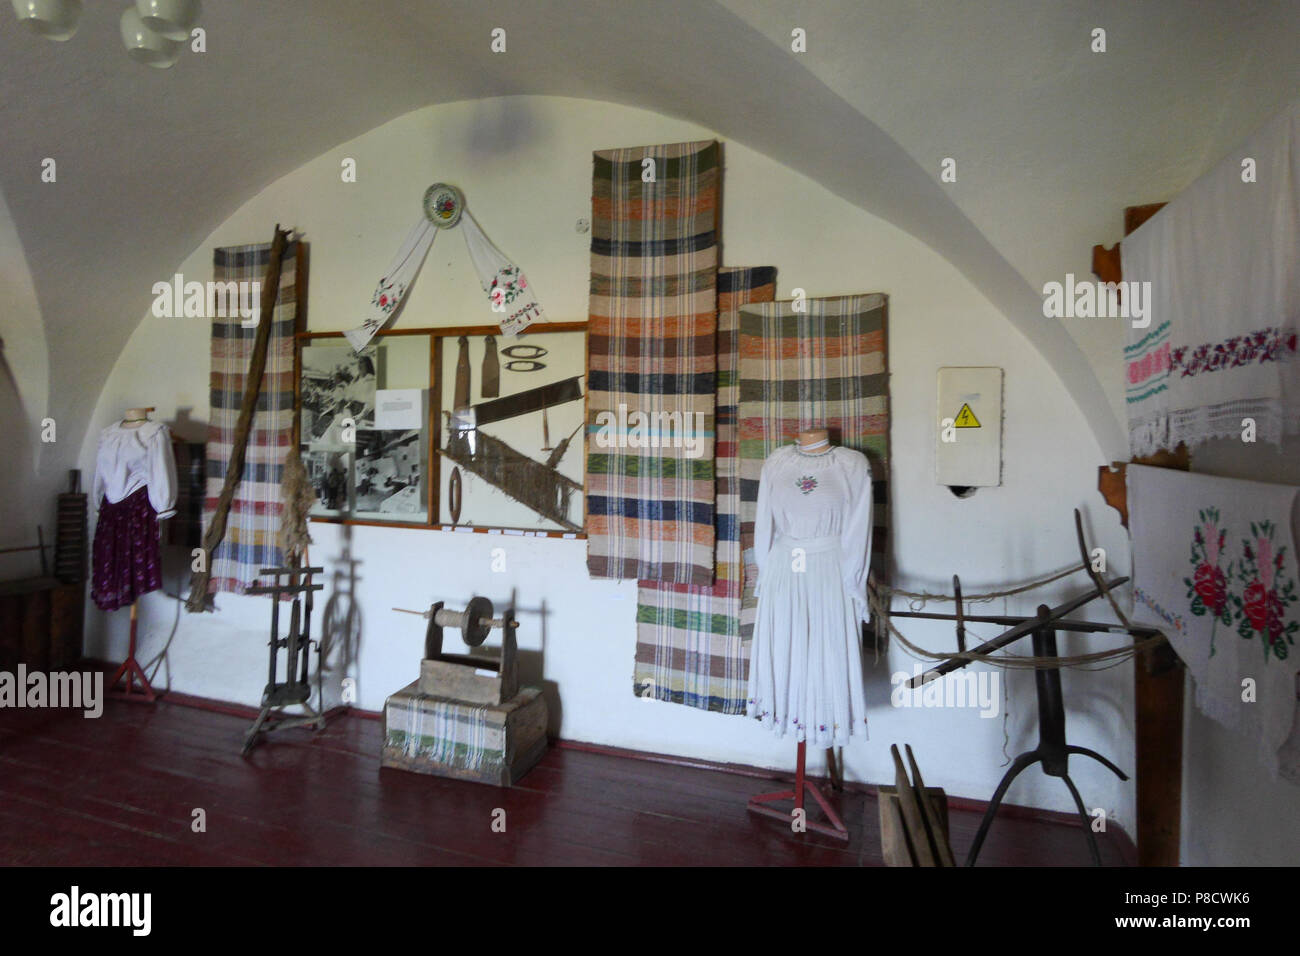 Exposition room seamstresses of old times. On the walls are embroidered towels, sewing tools, as well as traditional embroideries on mannequins . For  - Stock Image